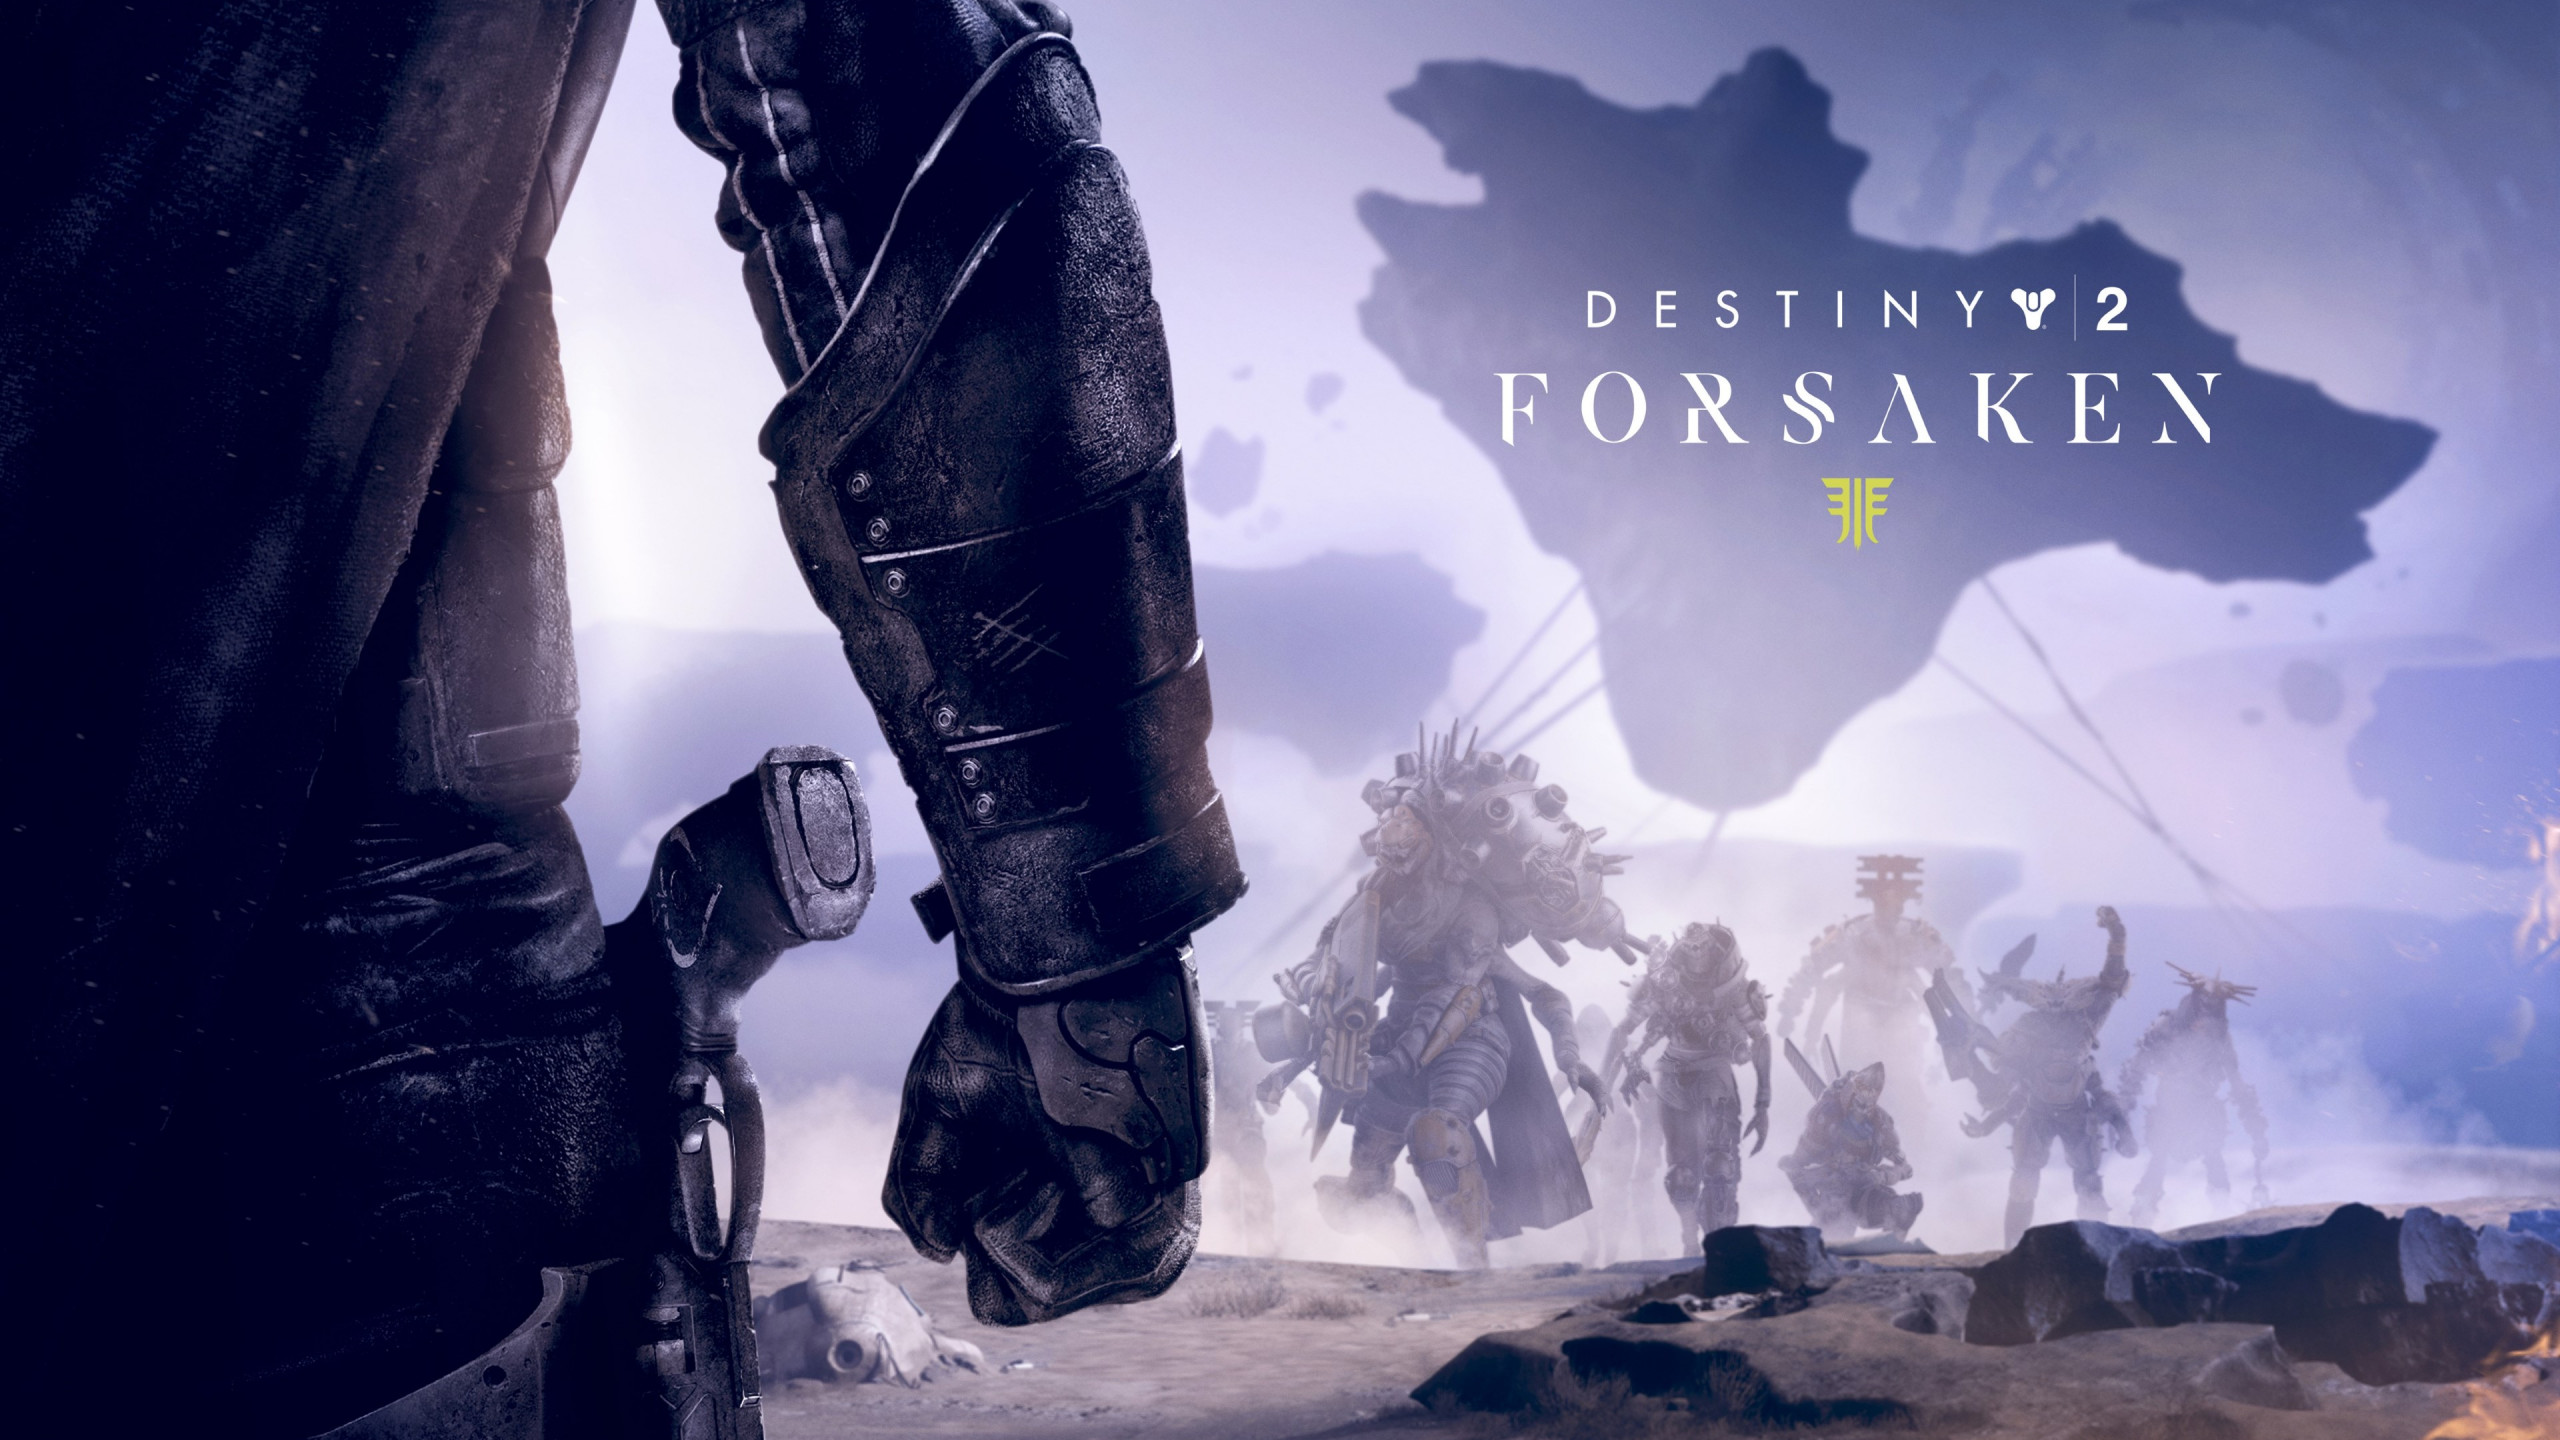 Destiny 2 Forsaken wallpaper 2560x1440